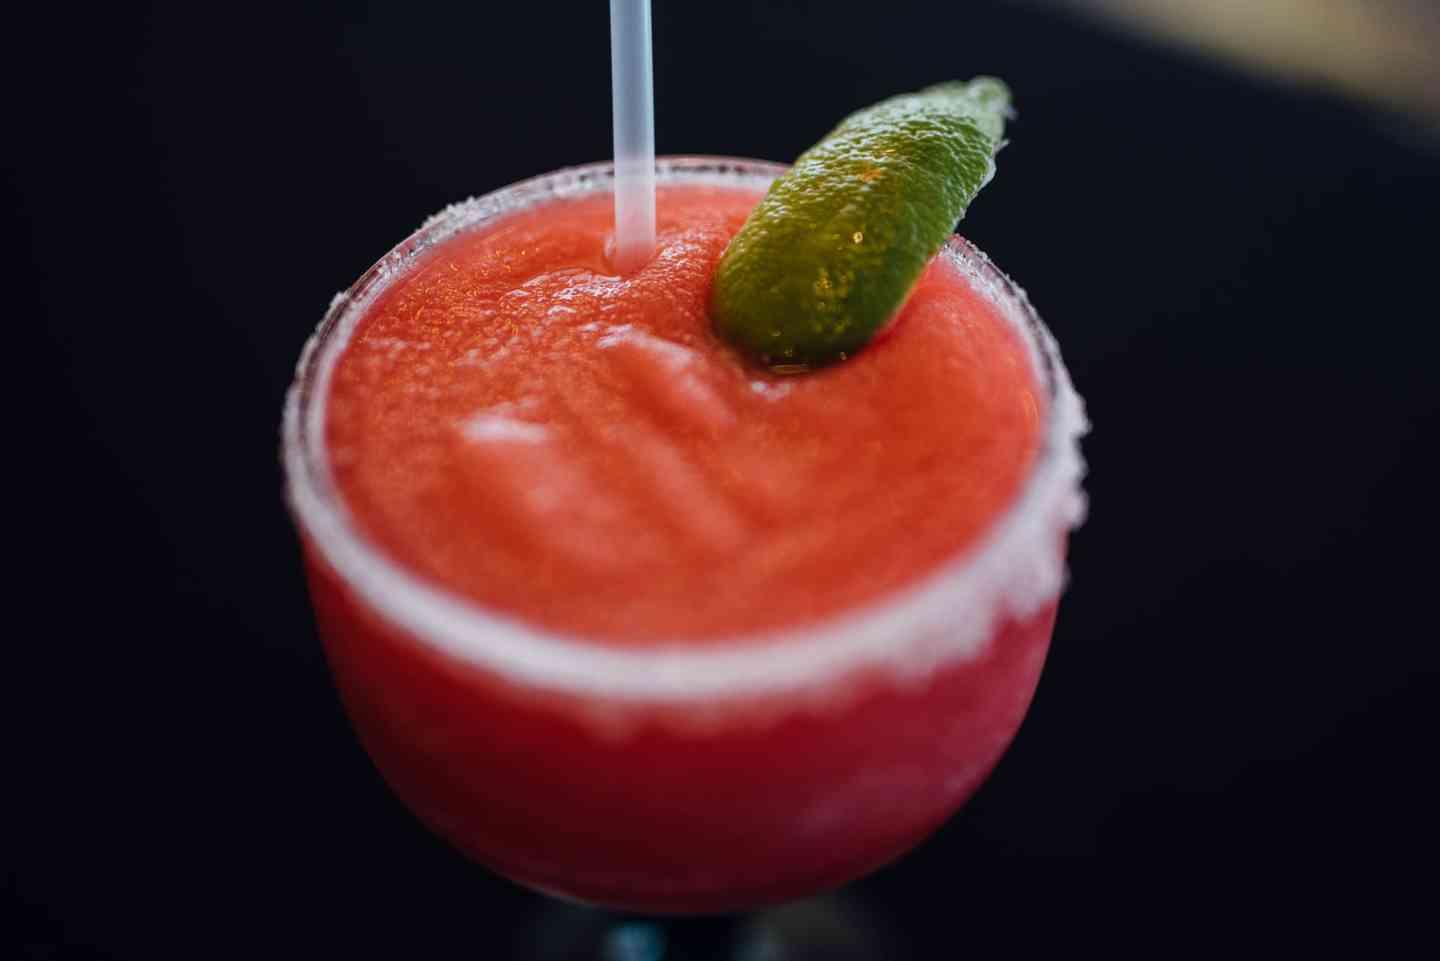 Pomegranate 'Rita